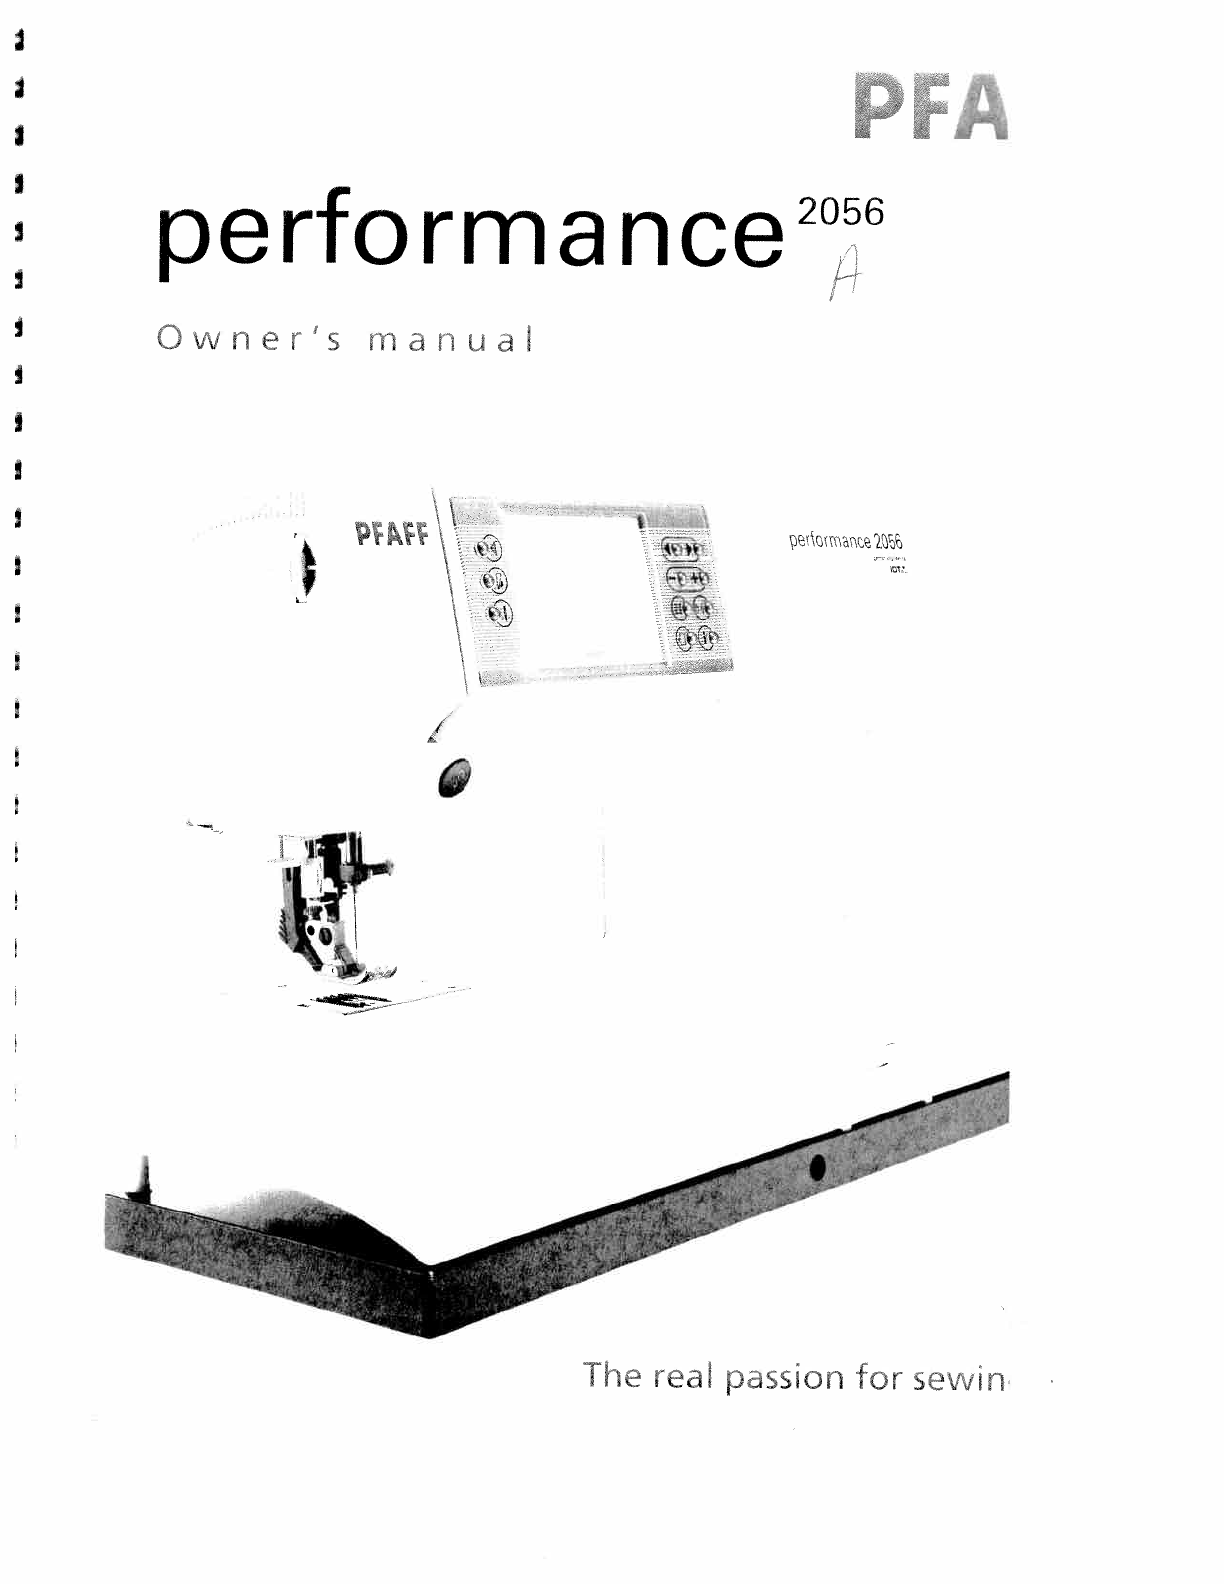 User manual Pfaff performance 2056 (110 pages)